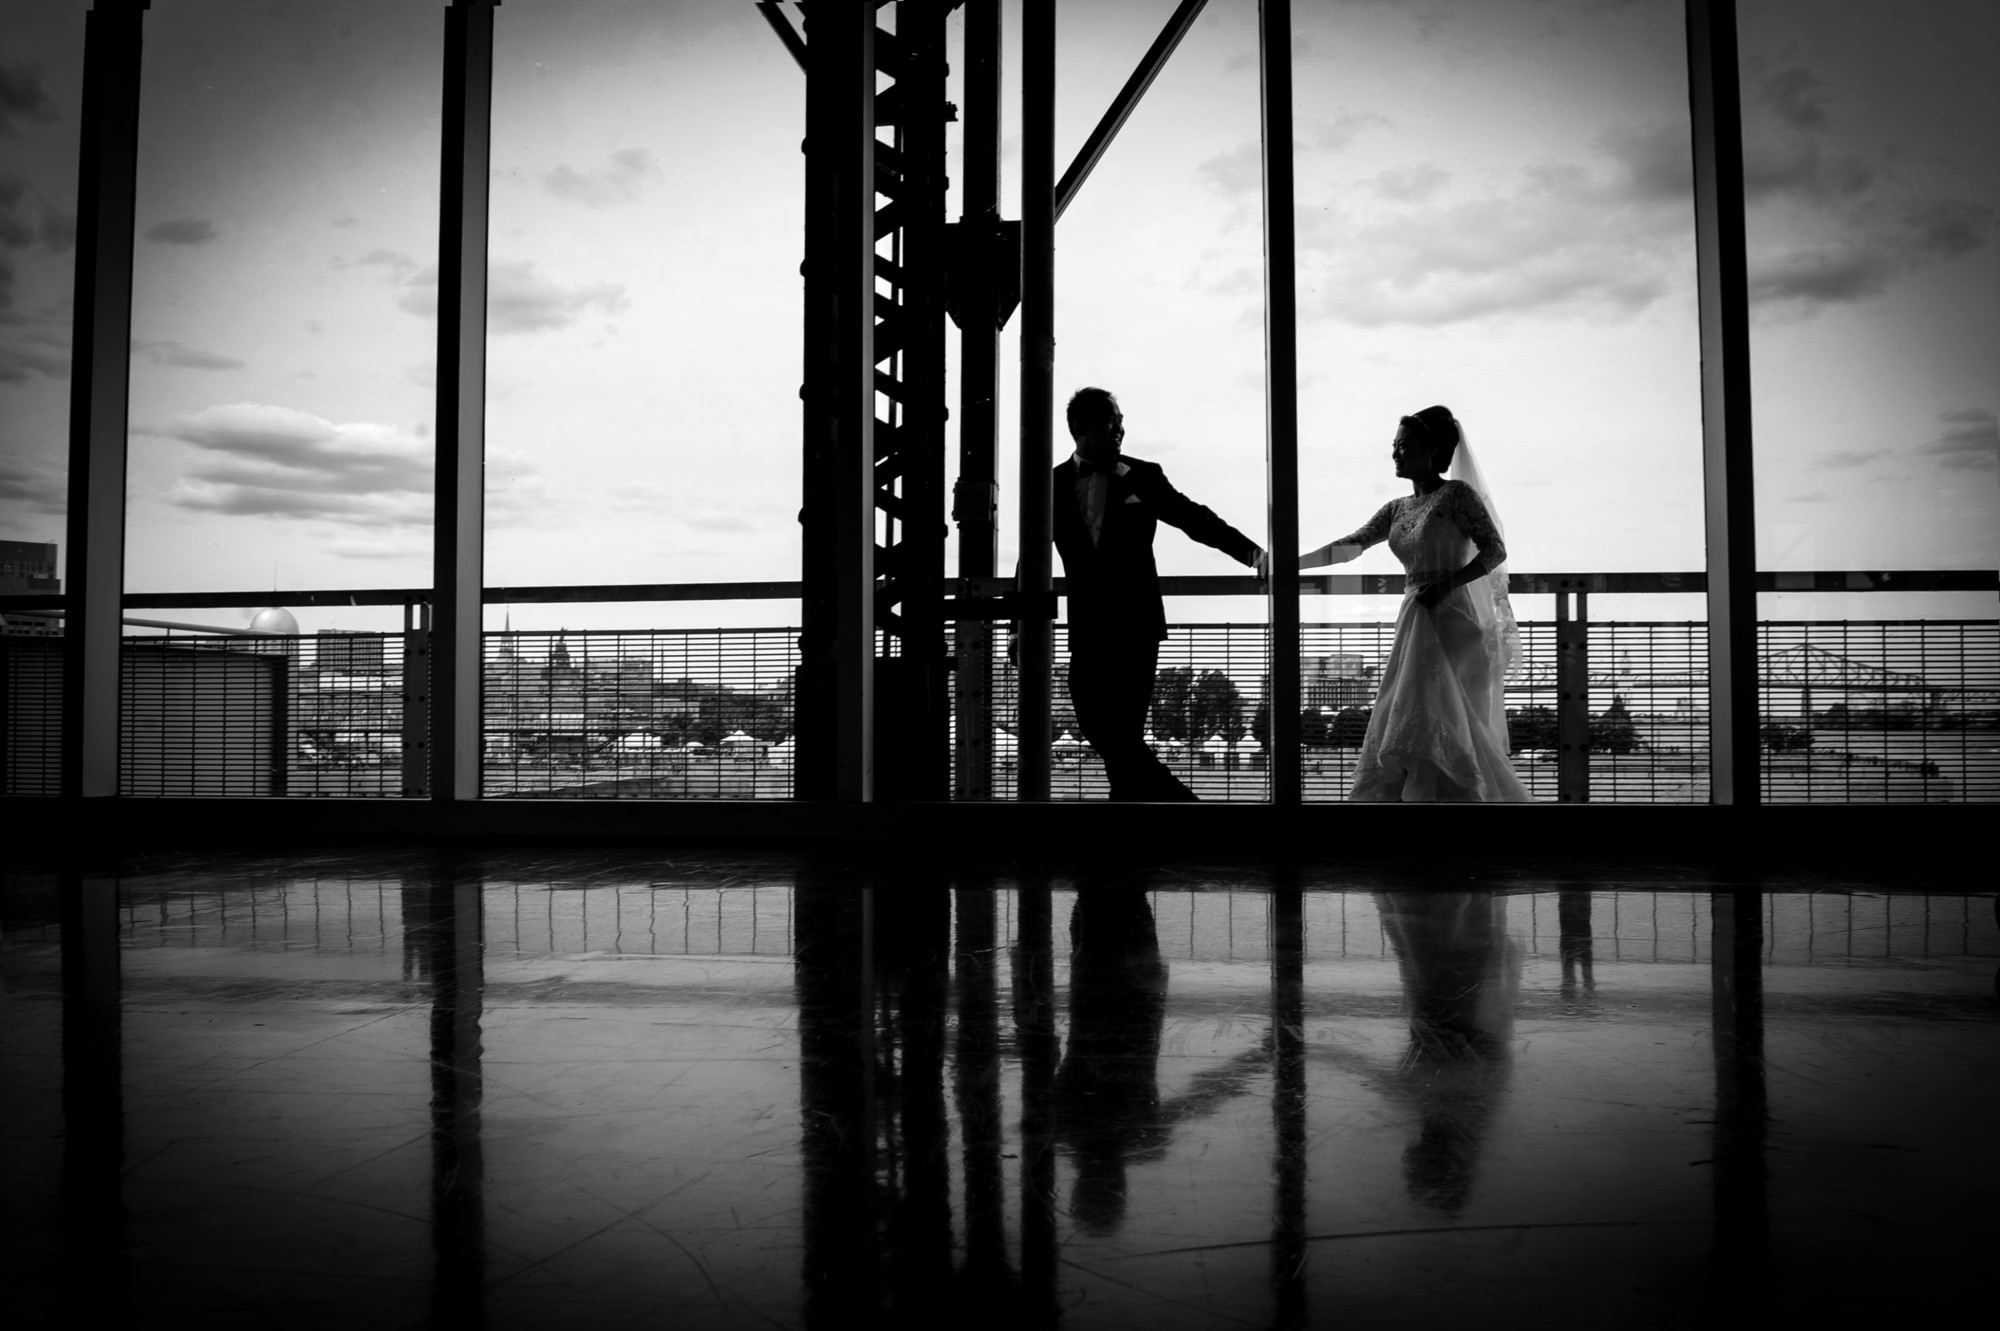 silhouettes, montreal wedding, black and white photography, la v image